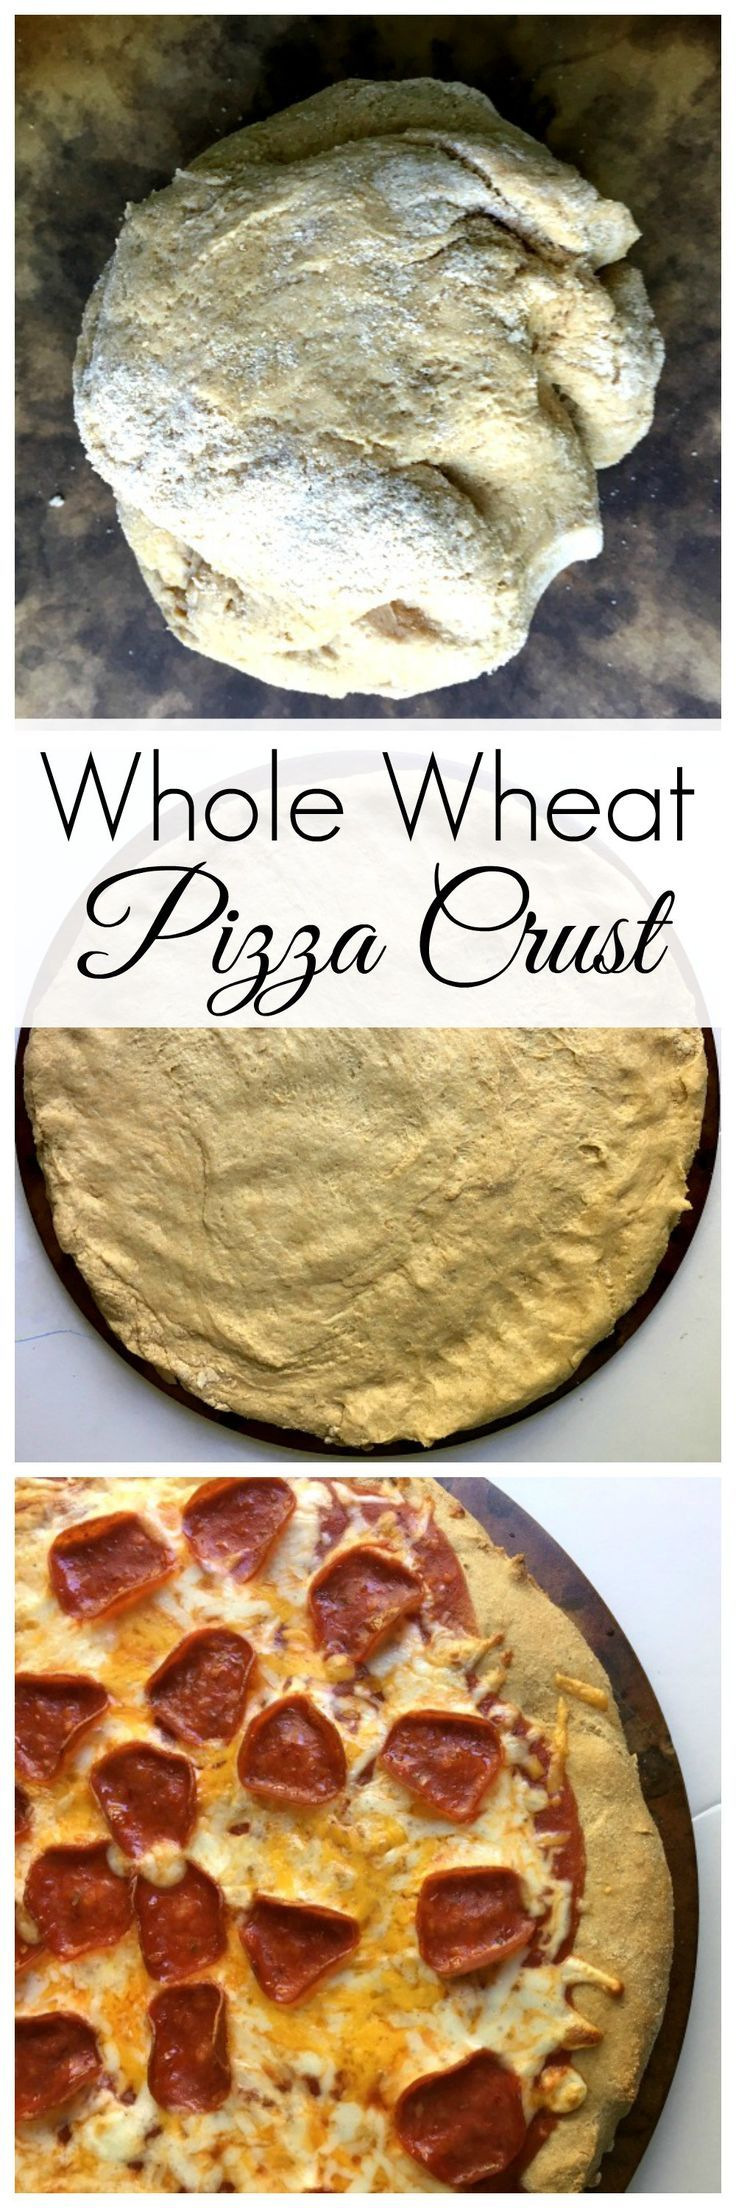 Healthy Homemade Whole Wheat Pizza Crust! A delicious and easy recipe the whole family will love!